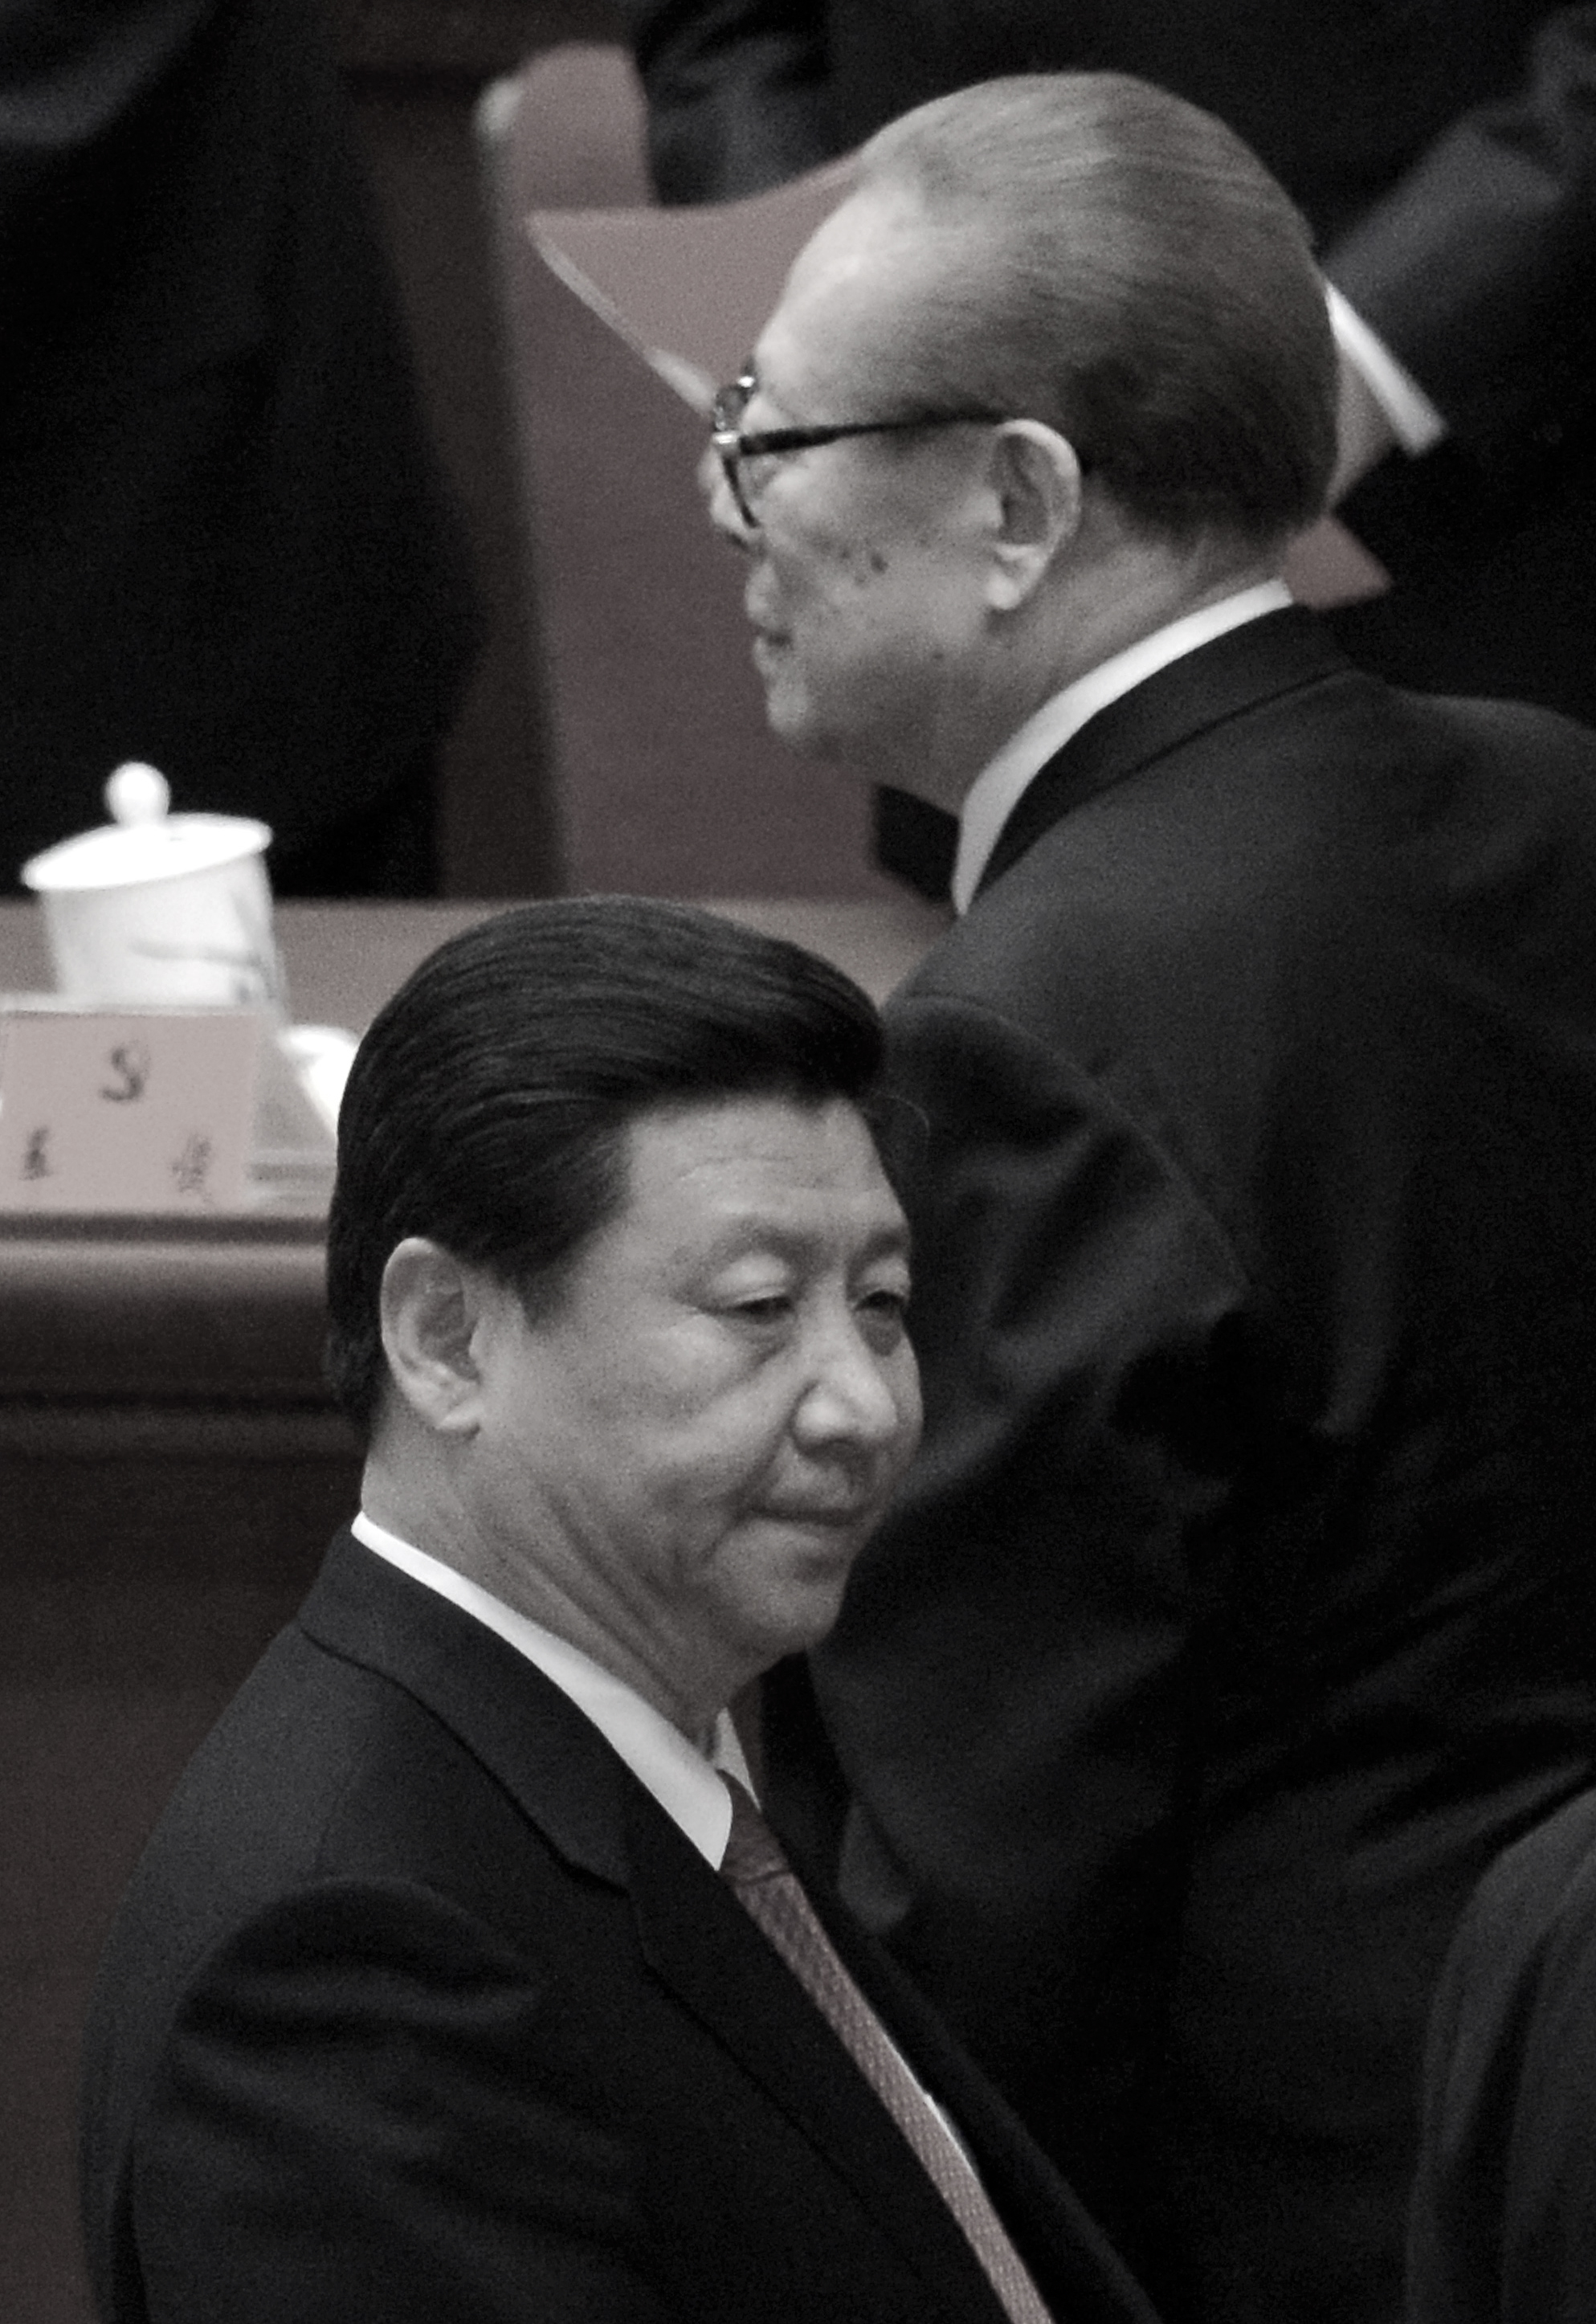 Former Chinese Communist Party head Jiang Zemin (R) walks by Xi Jinping (L) after the closing of the 18th Communist Party Congress at the Great Hall of the People in Beijing on Nov. 14, 2012. At this Party Congress Xi was formally appointed to head the CCP. (Wang Zhao/AFP/Getty Images)